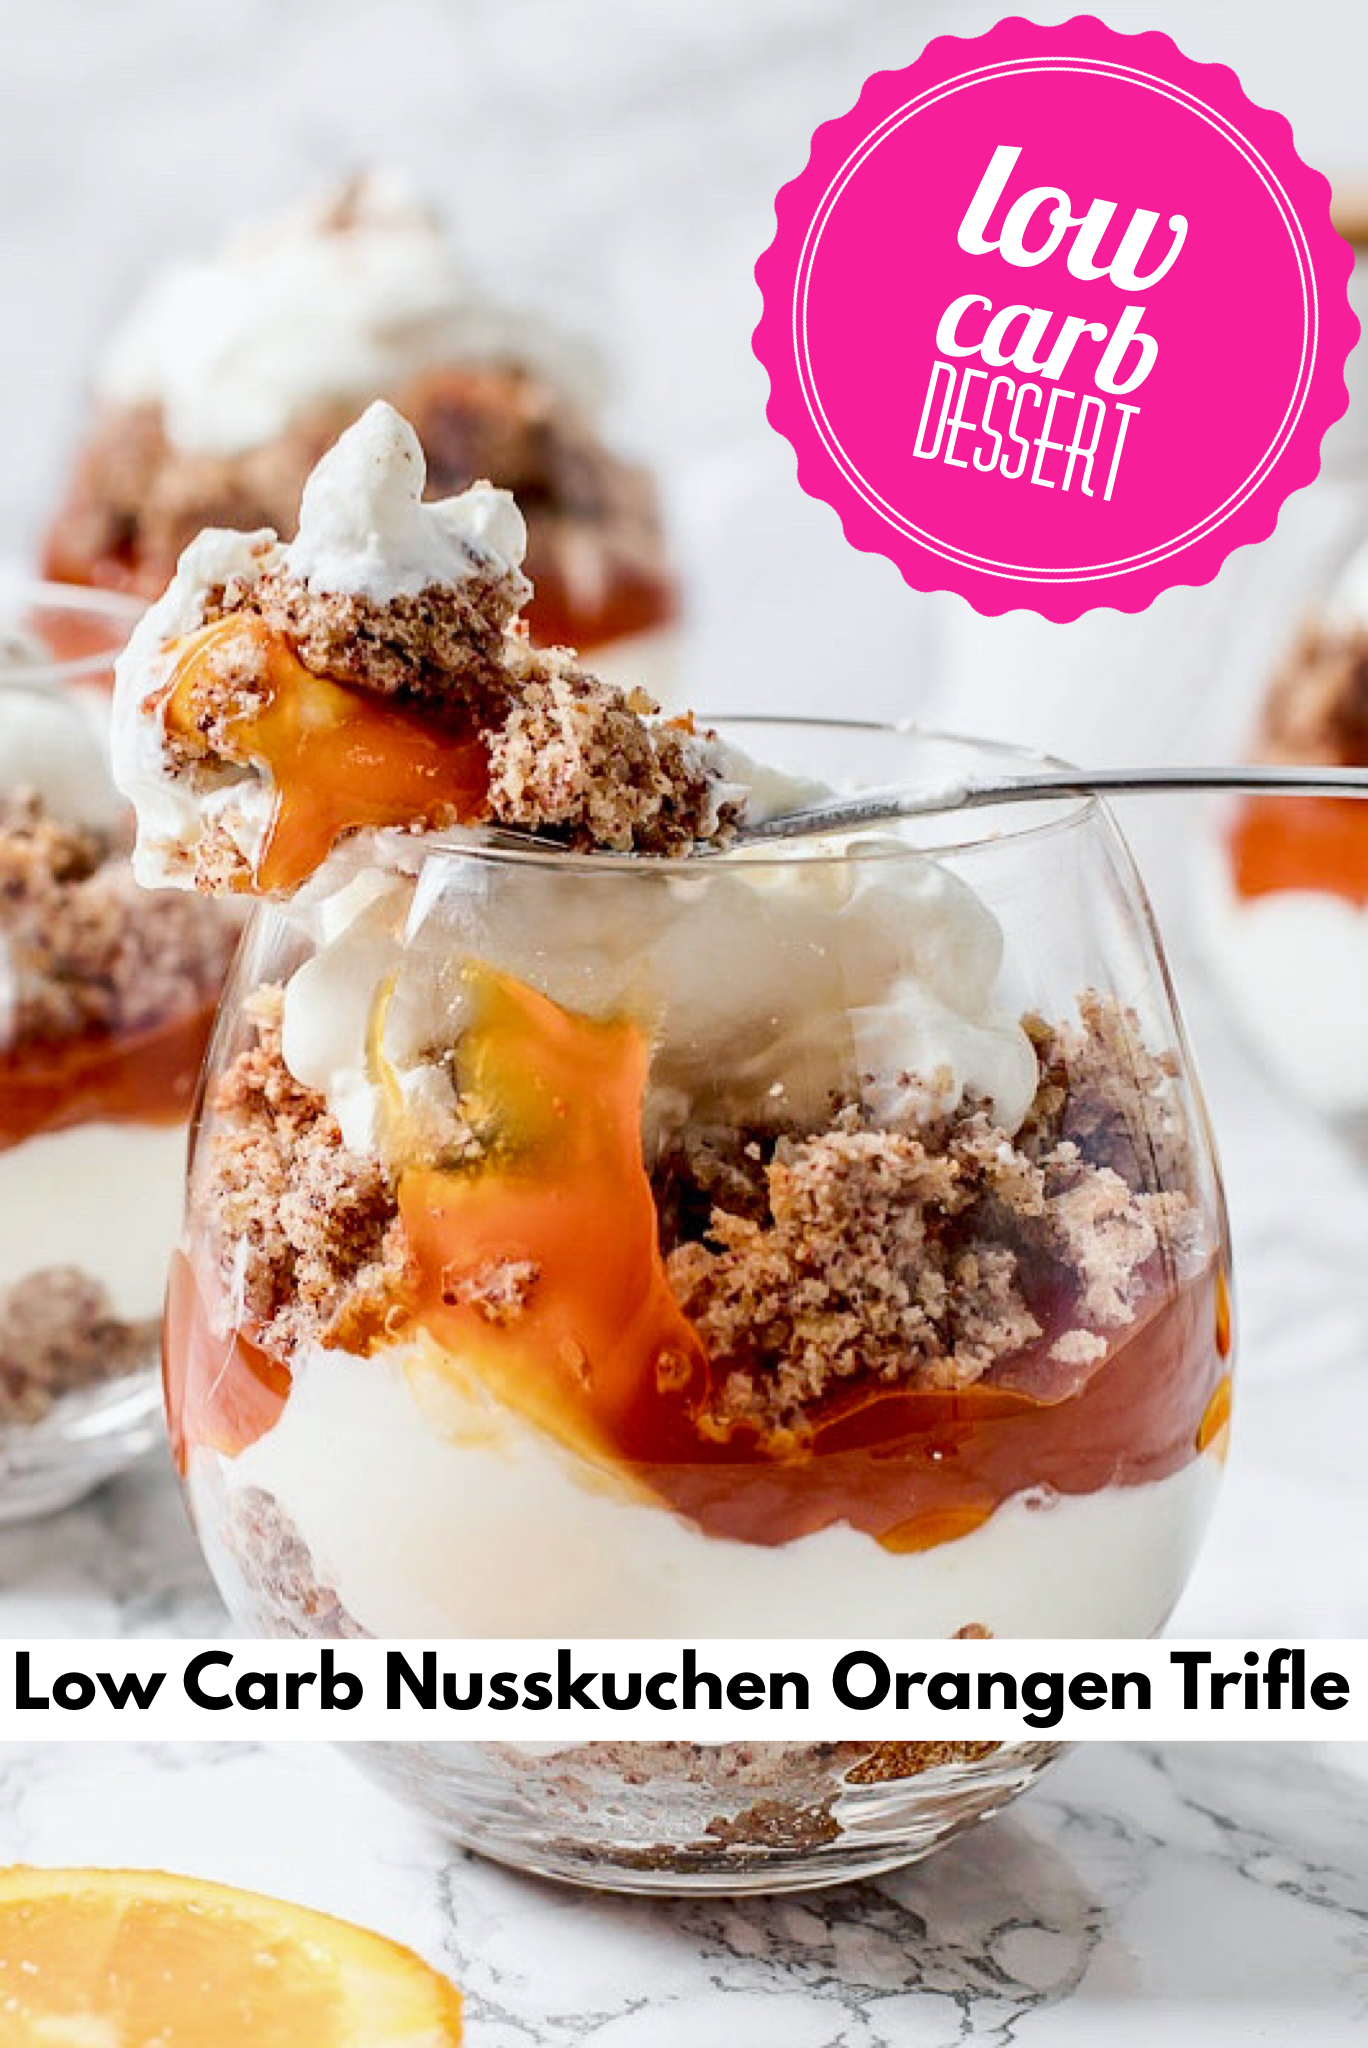 Photo of Nutcake Orange Trifle Low Carb